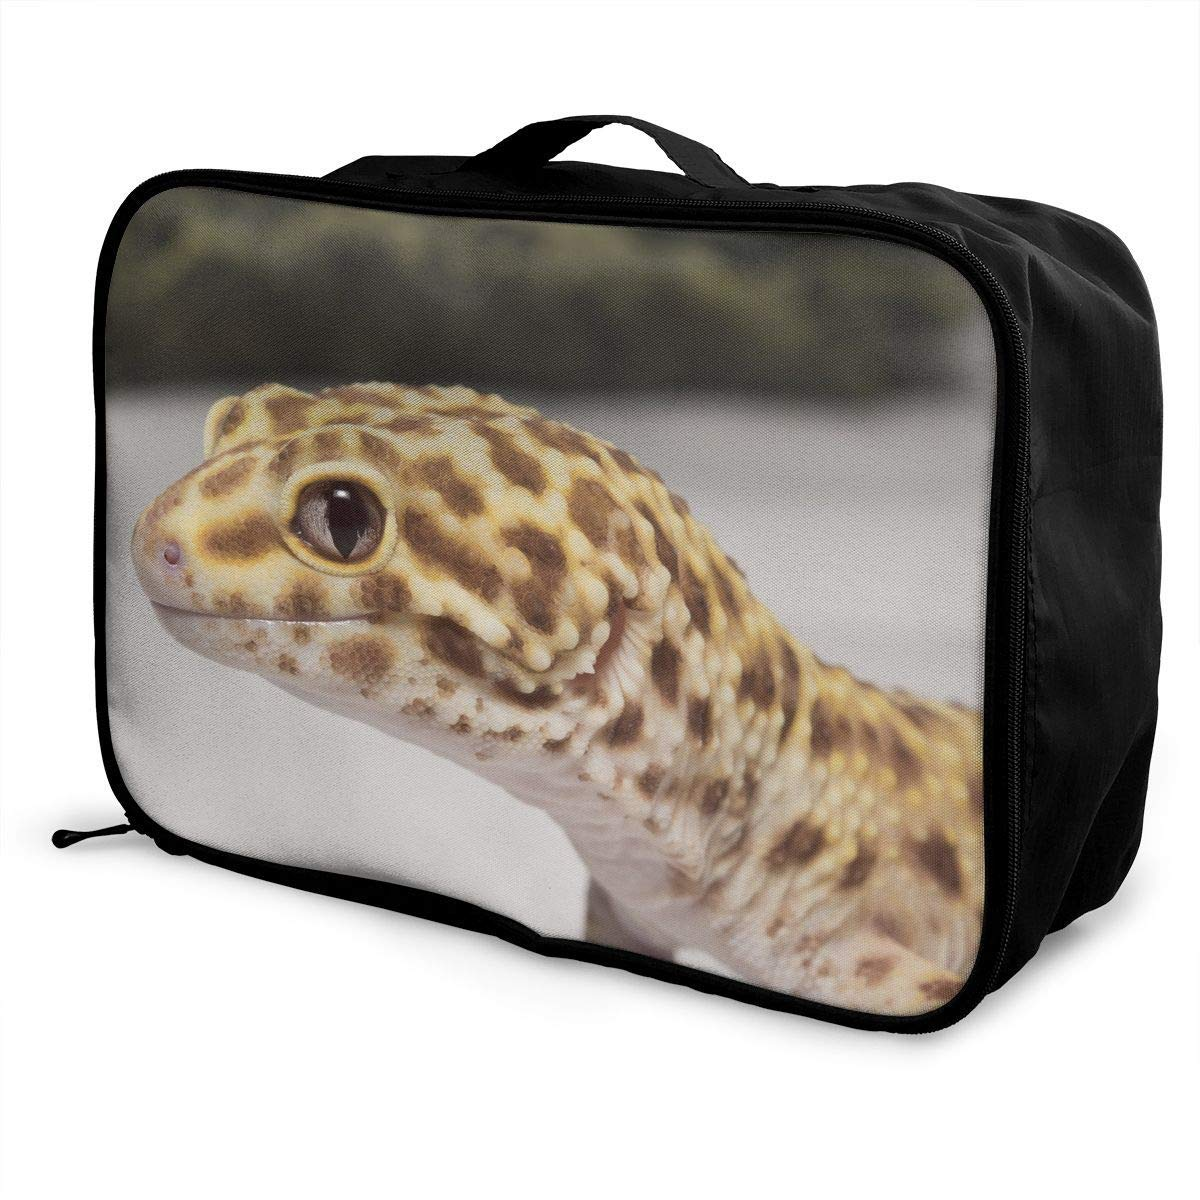 Portable Luggage Duffel Bag Leopard Gecko Travel Bags Carry-on In Trolley Handle